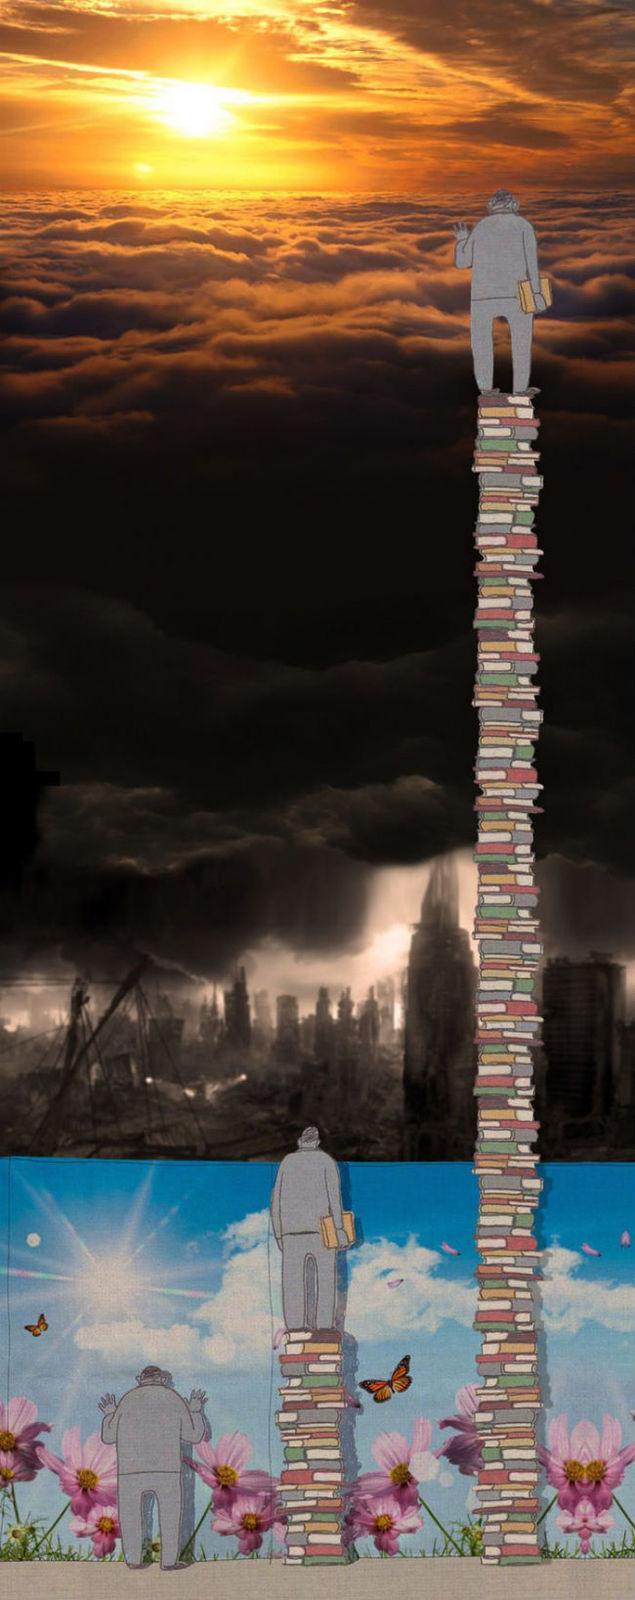 standing-on-books-perspective1.jpg